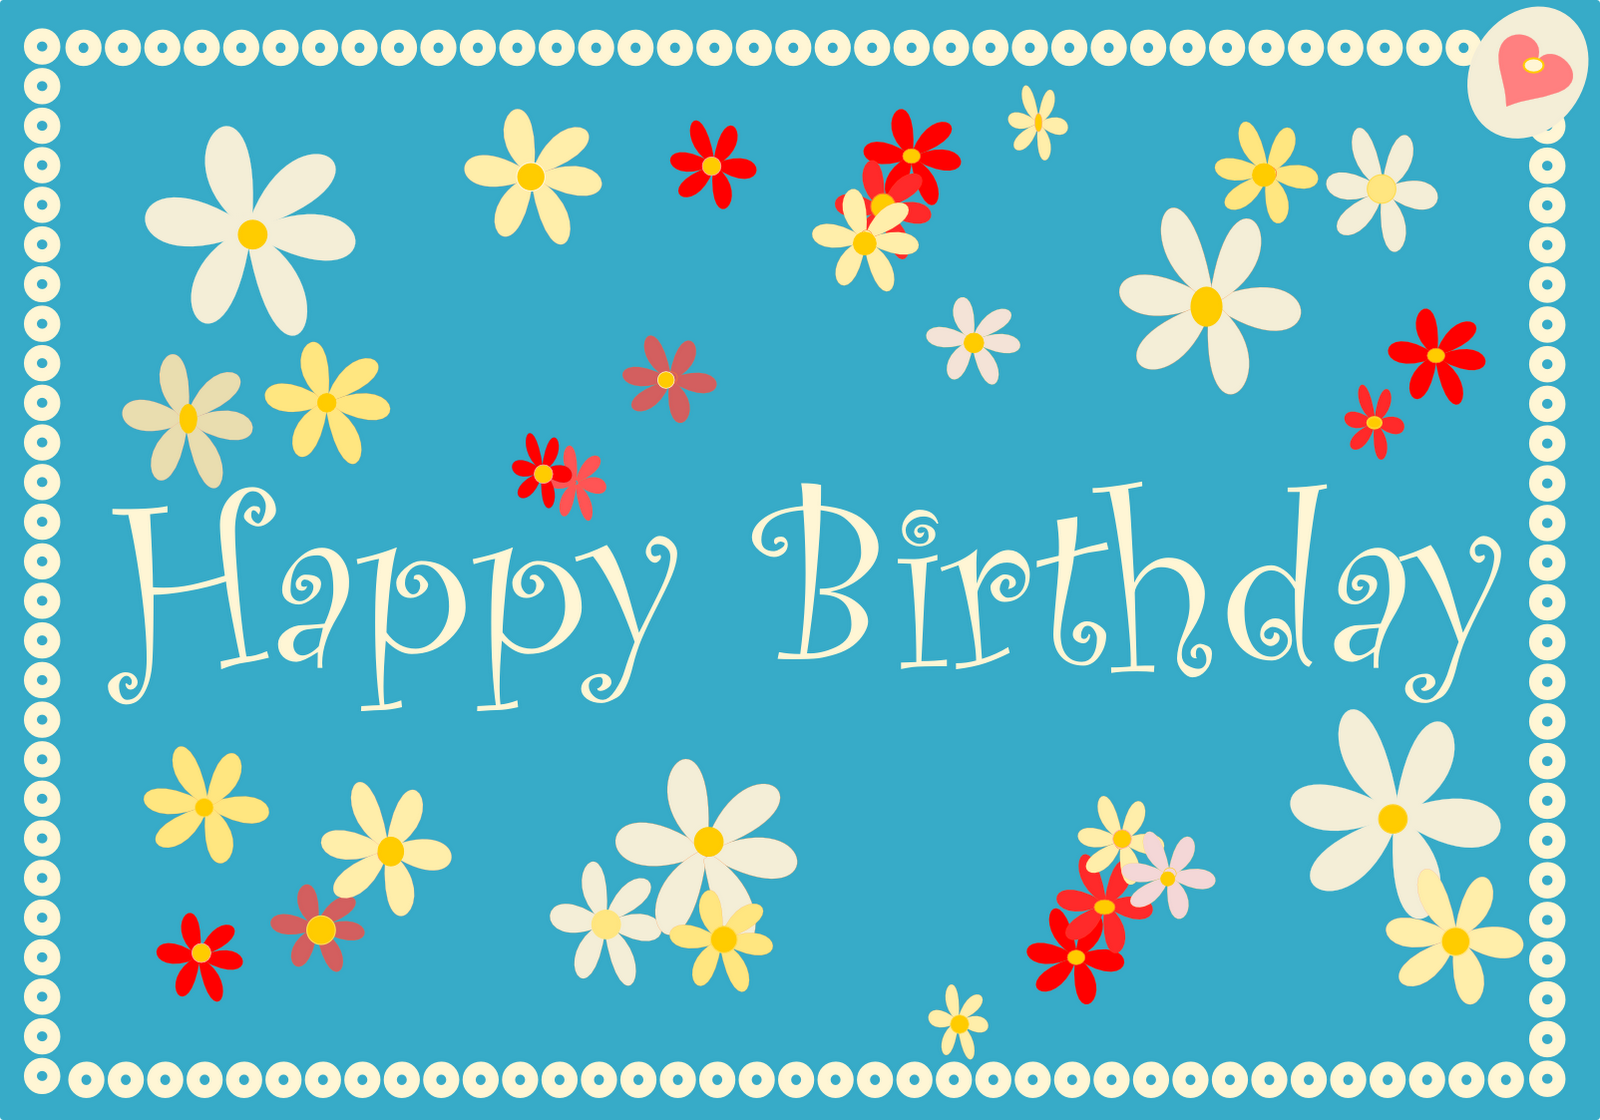 Happy birthday cards 2 coloring kids happy birthday cards bookmarktalkfo Gallery